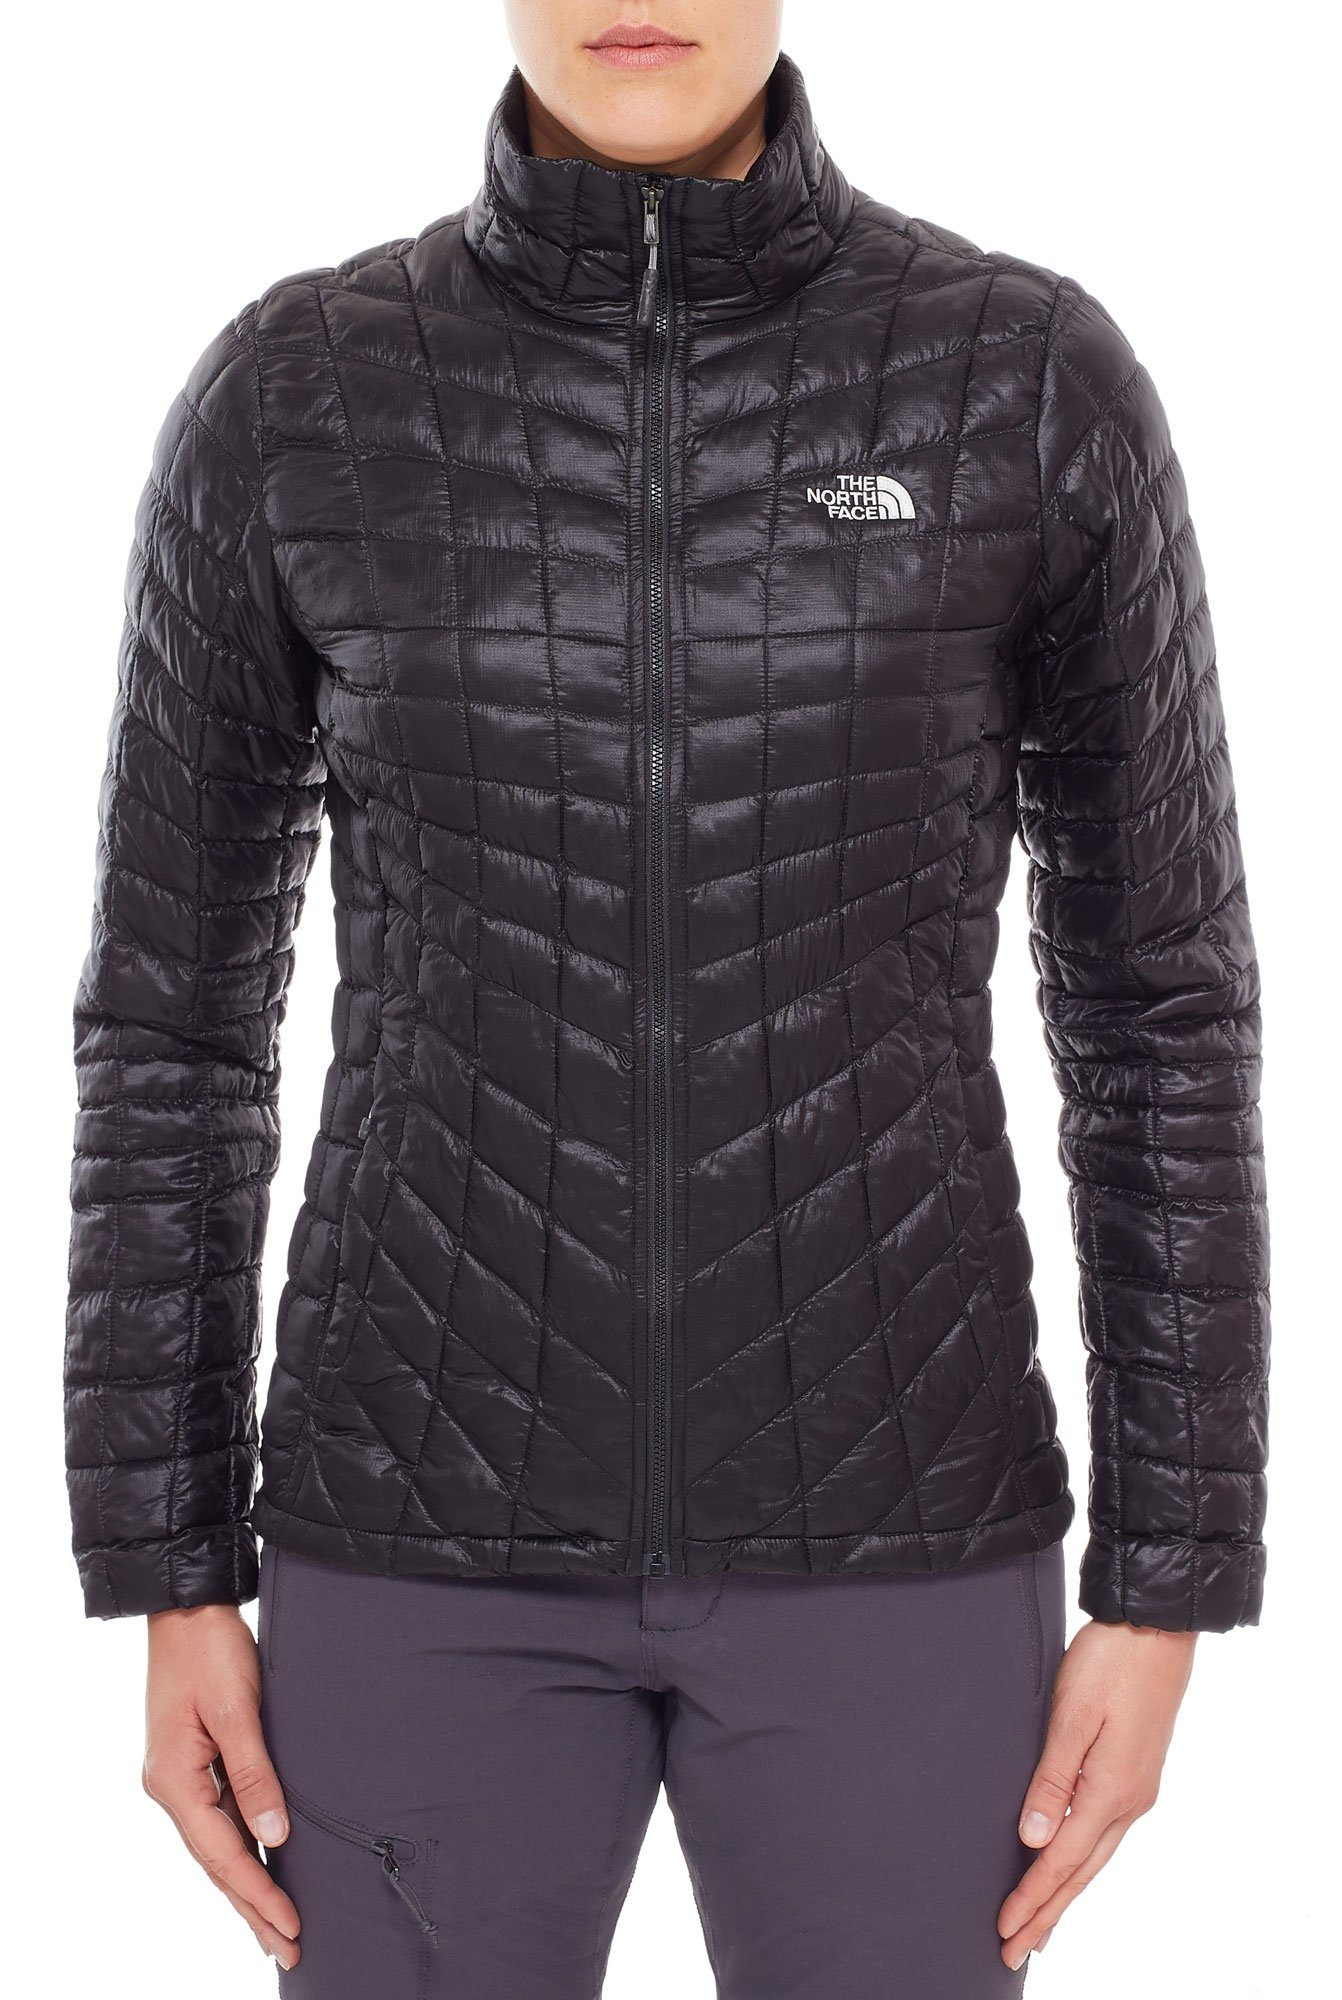 The North Face Outdoorjacke »ThermoBall Jacket Women«